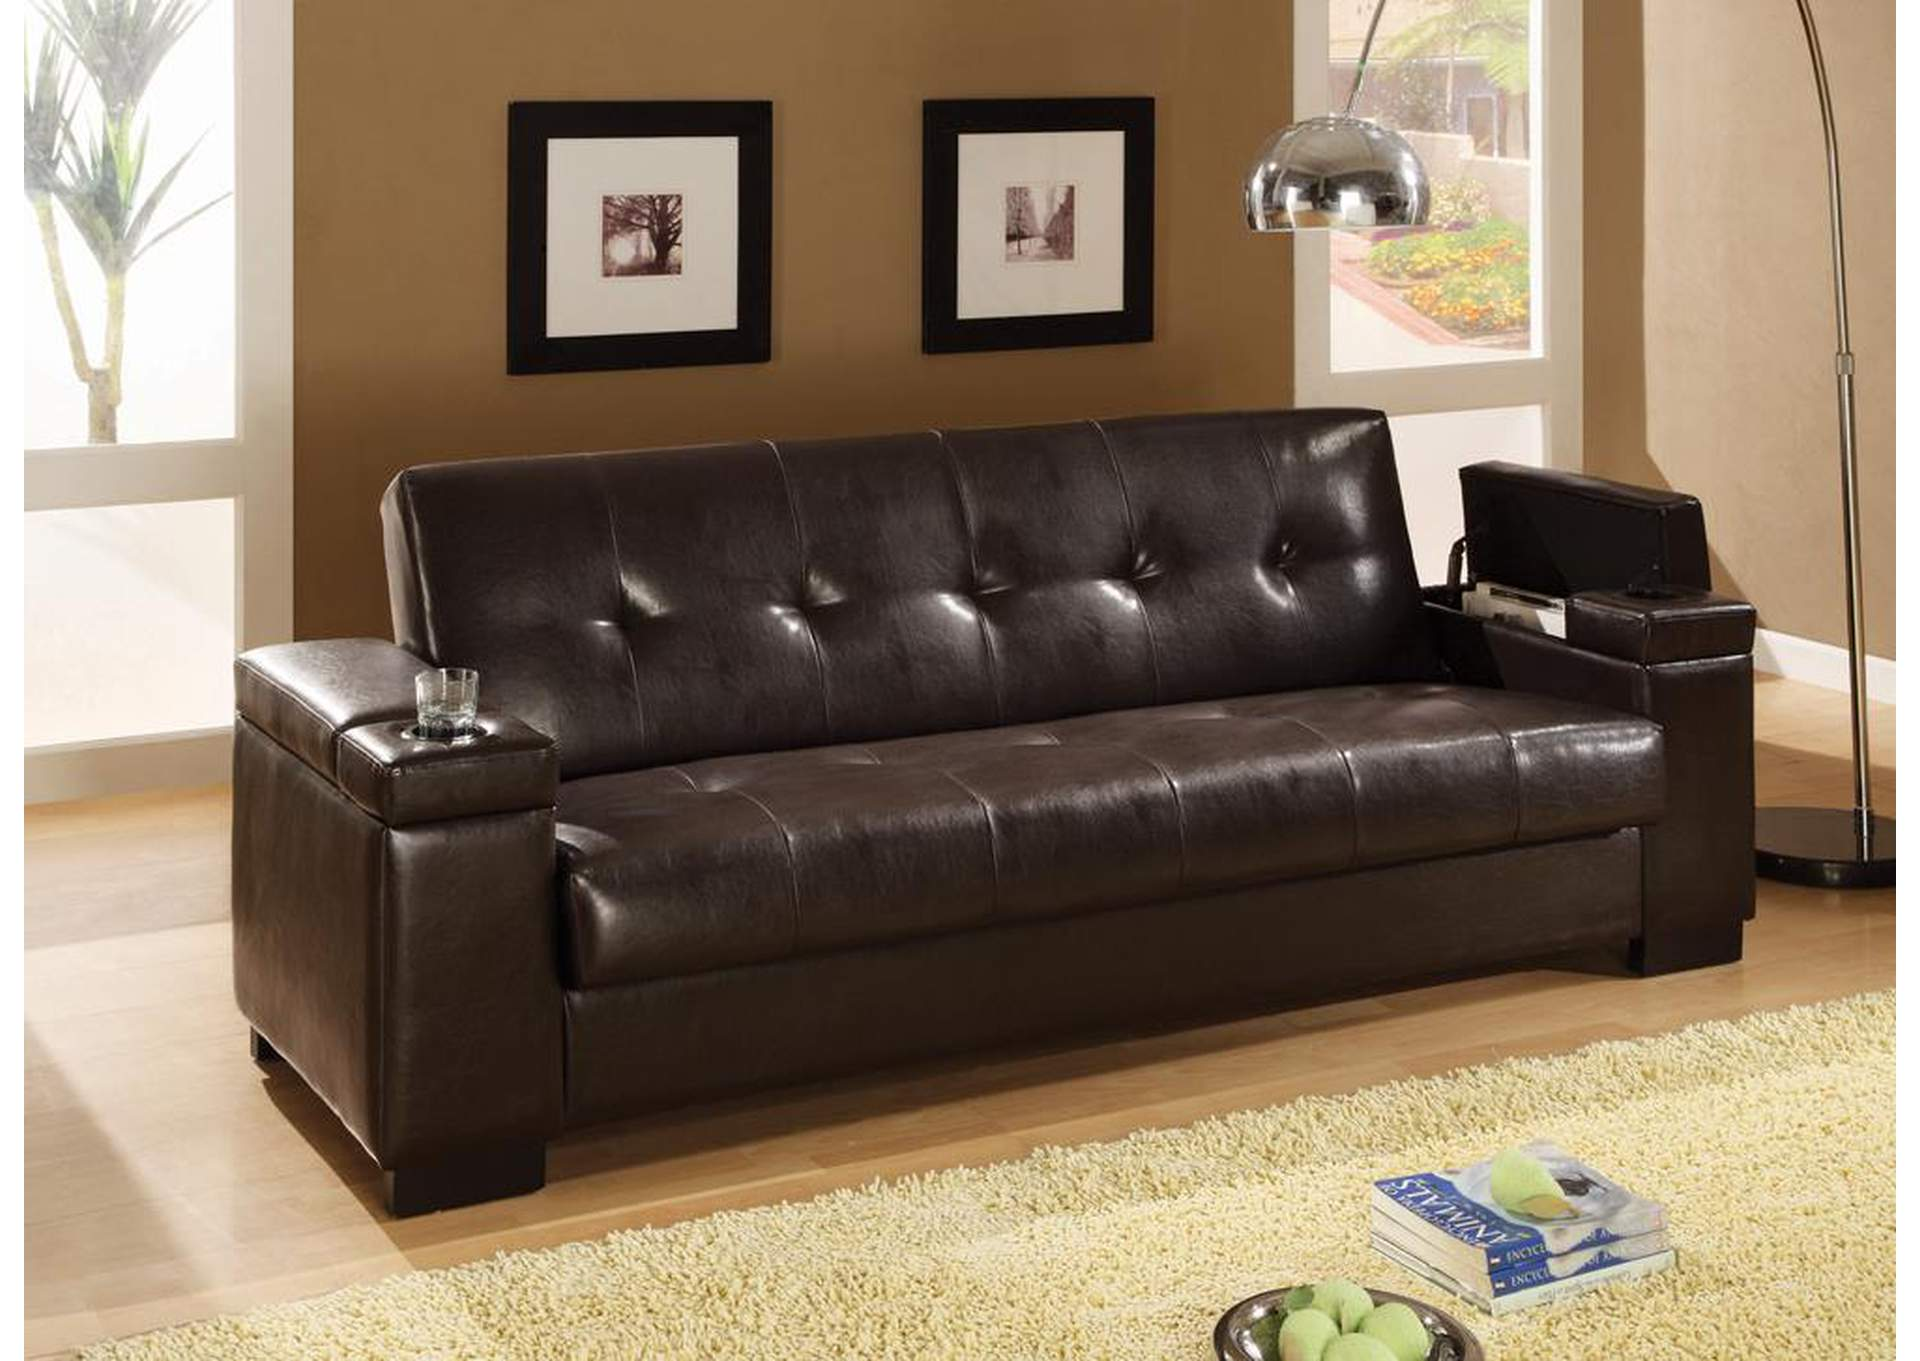 Actionwood Home Furniture - Salt Lake City, UT Dark Brown Sofa Bed